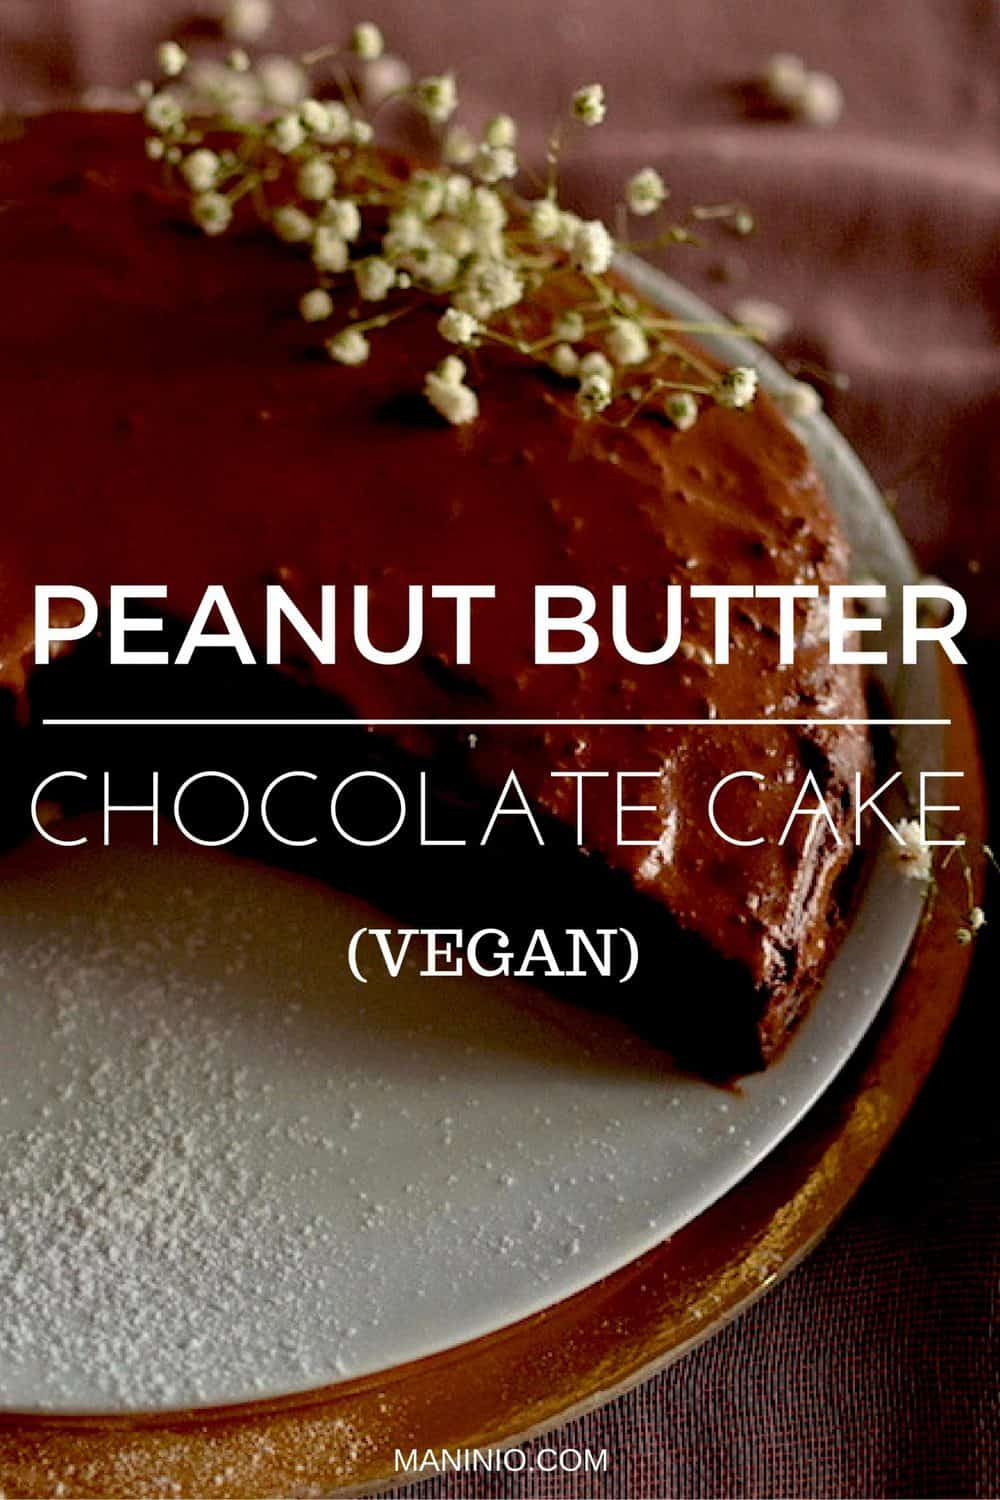 Peanut Butter Chocolate Cake, Vegan